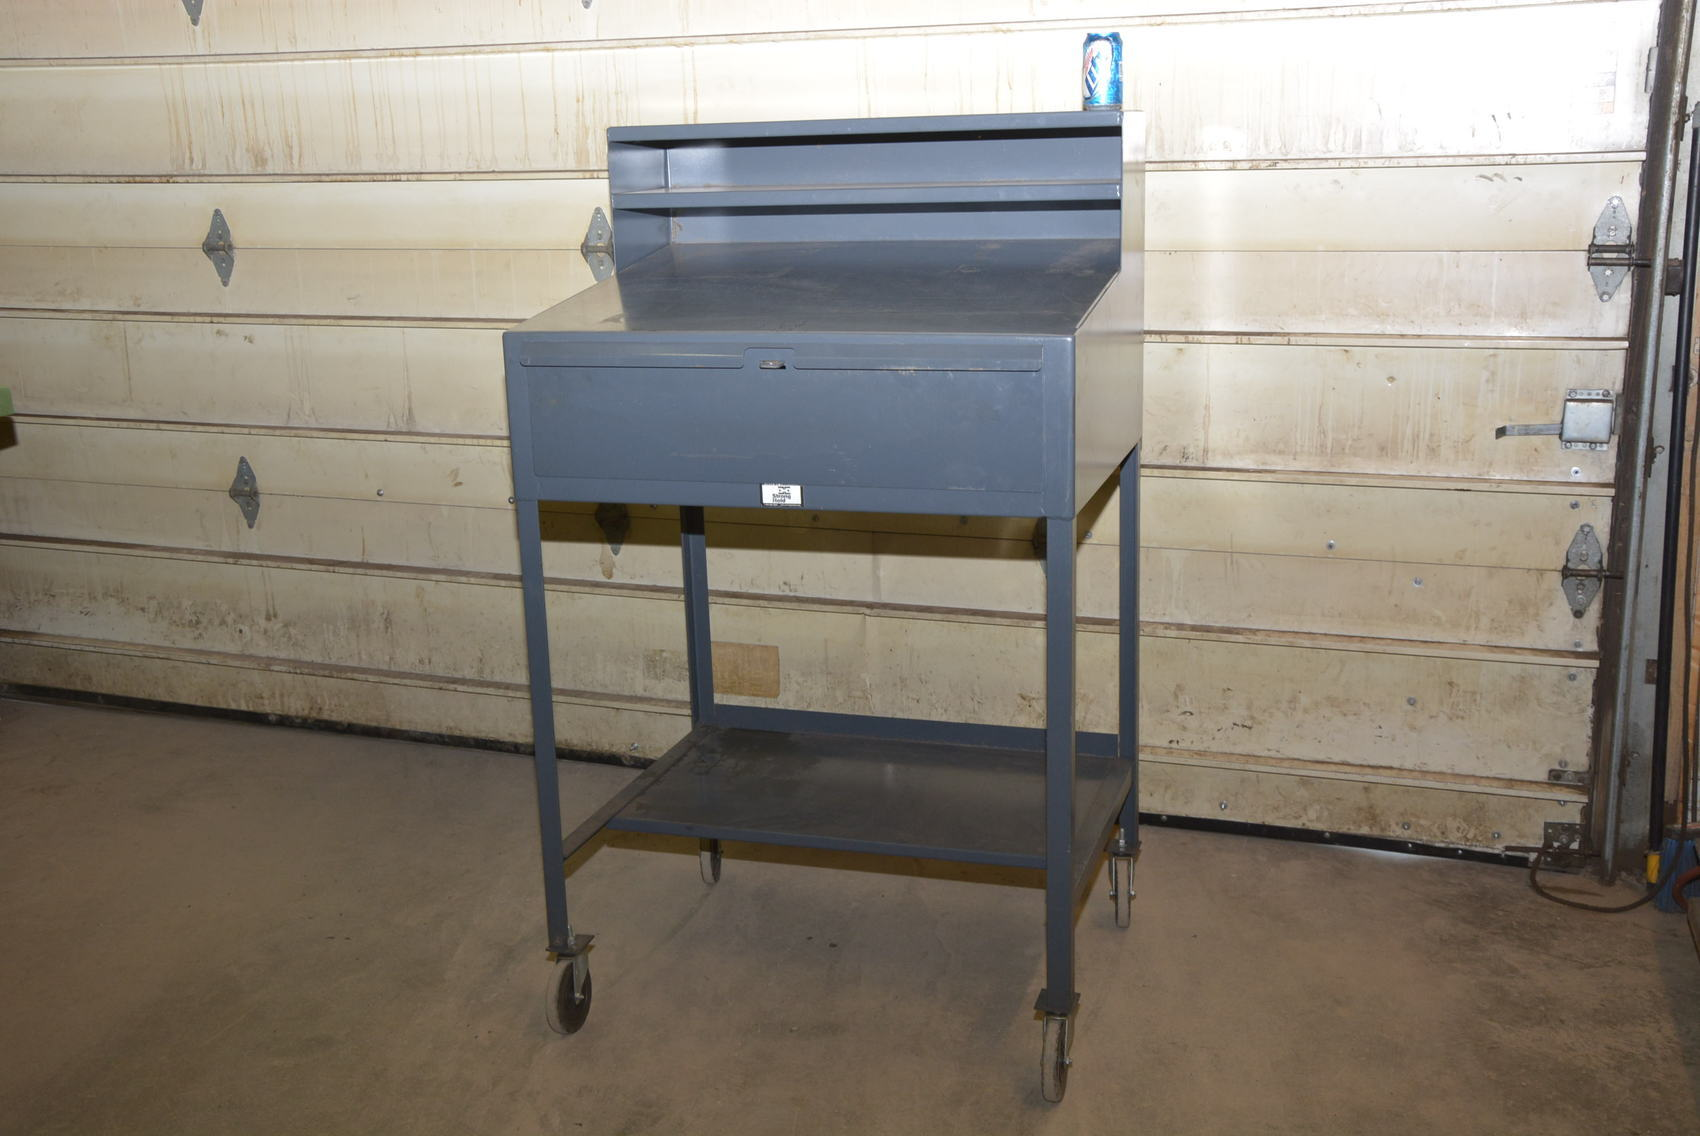 stac kkamr cabinet maintenance pdpzoom is drawers strong com cart with image hold cabinets shelf and